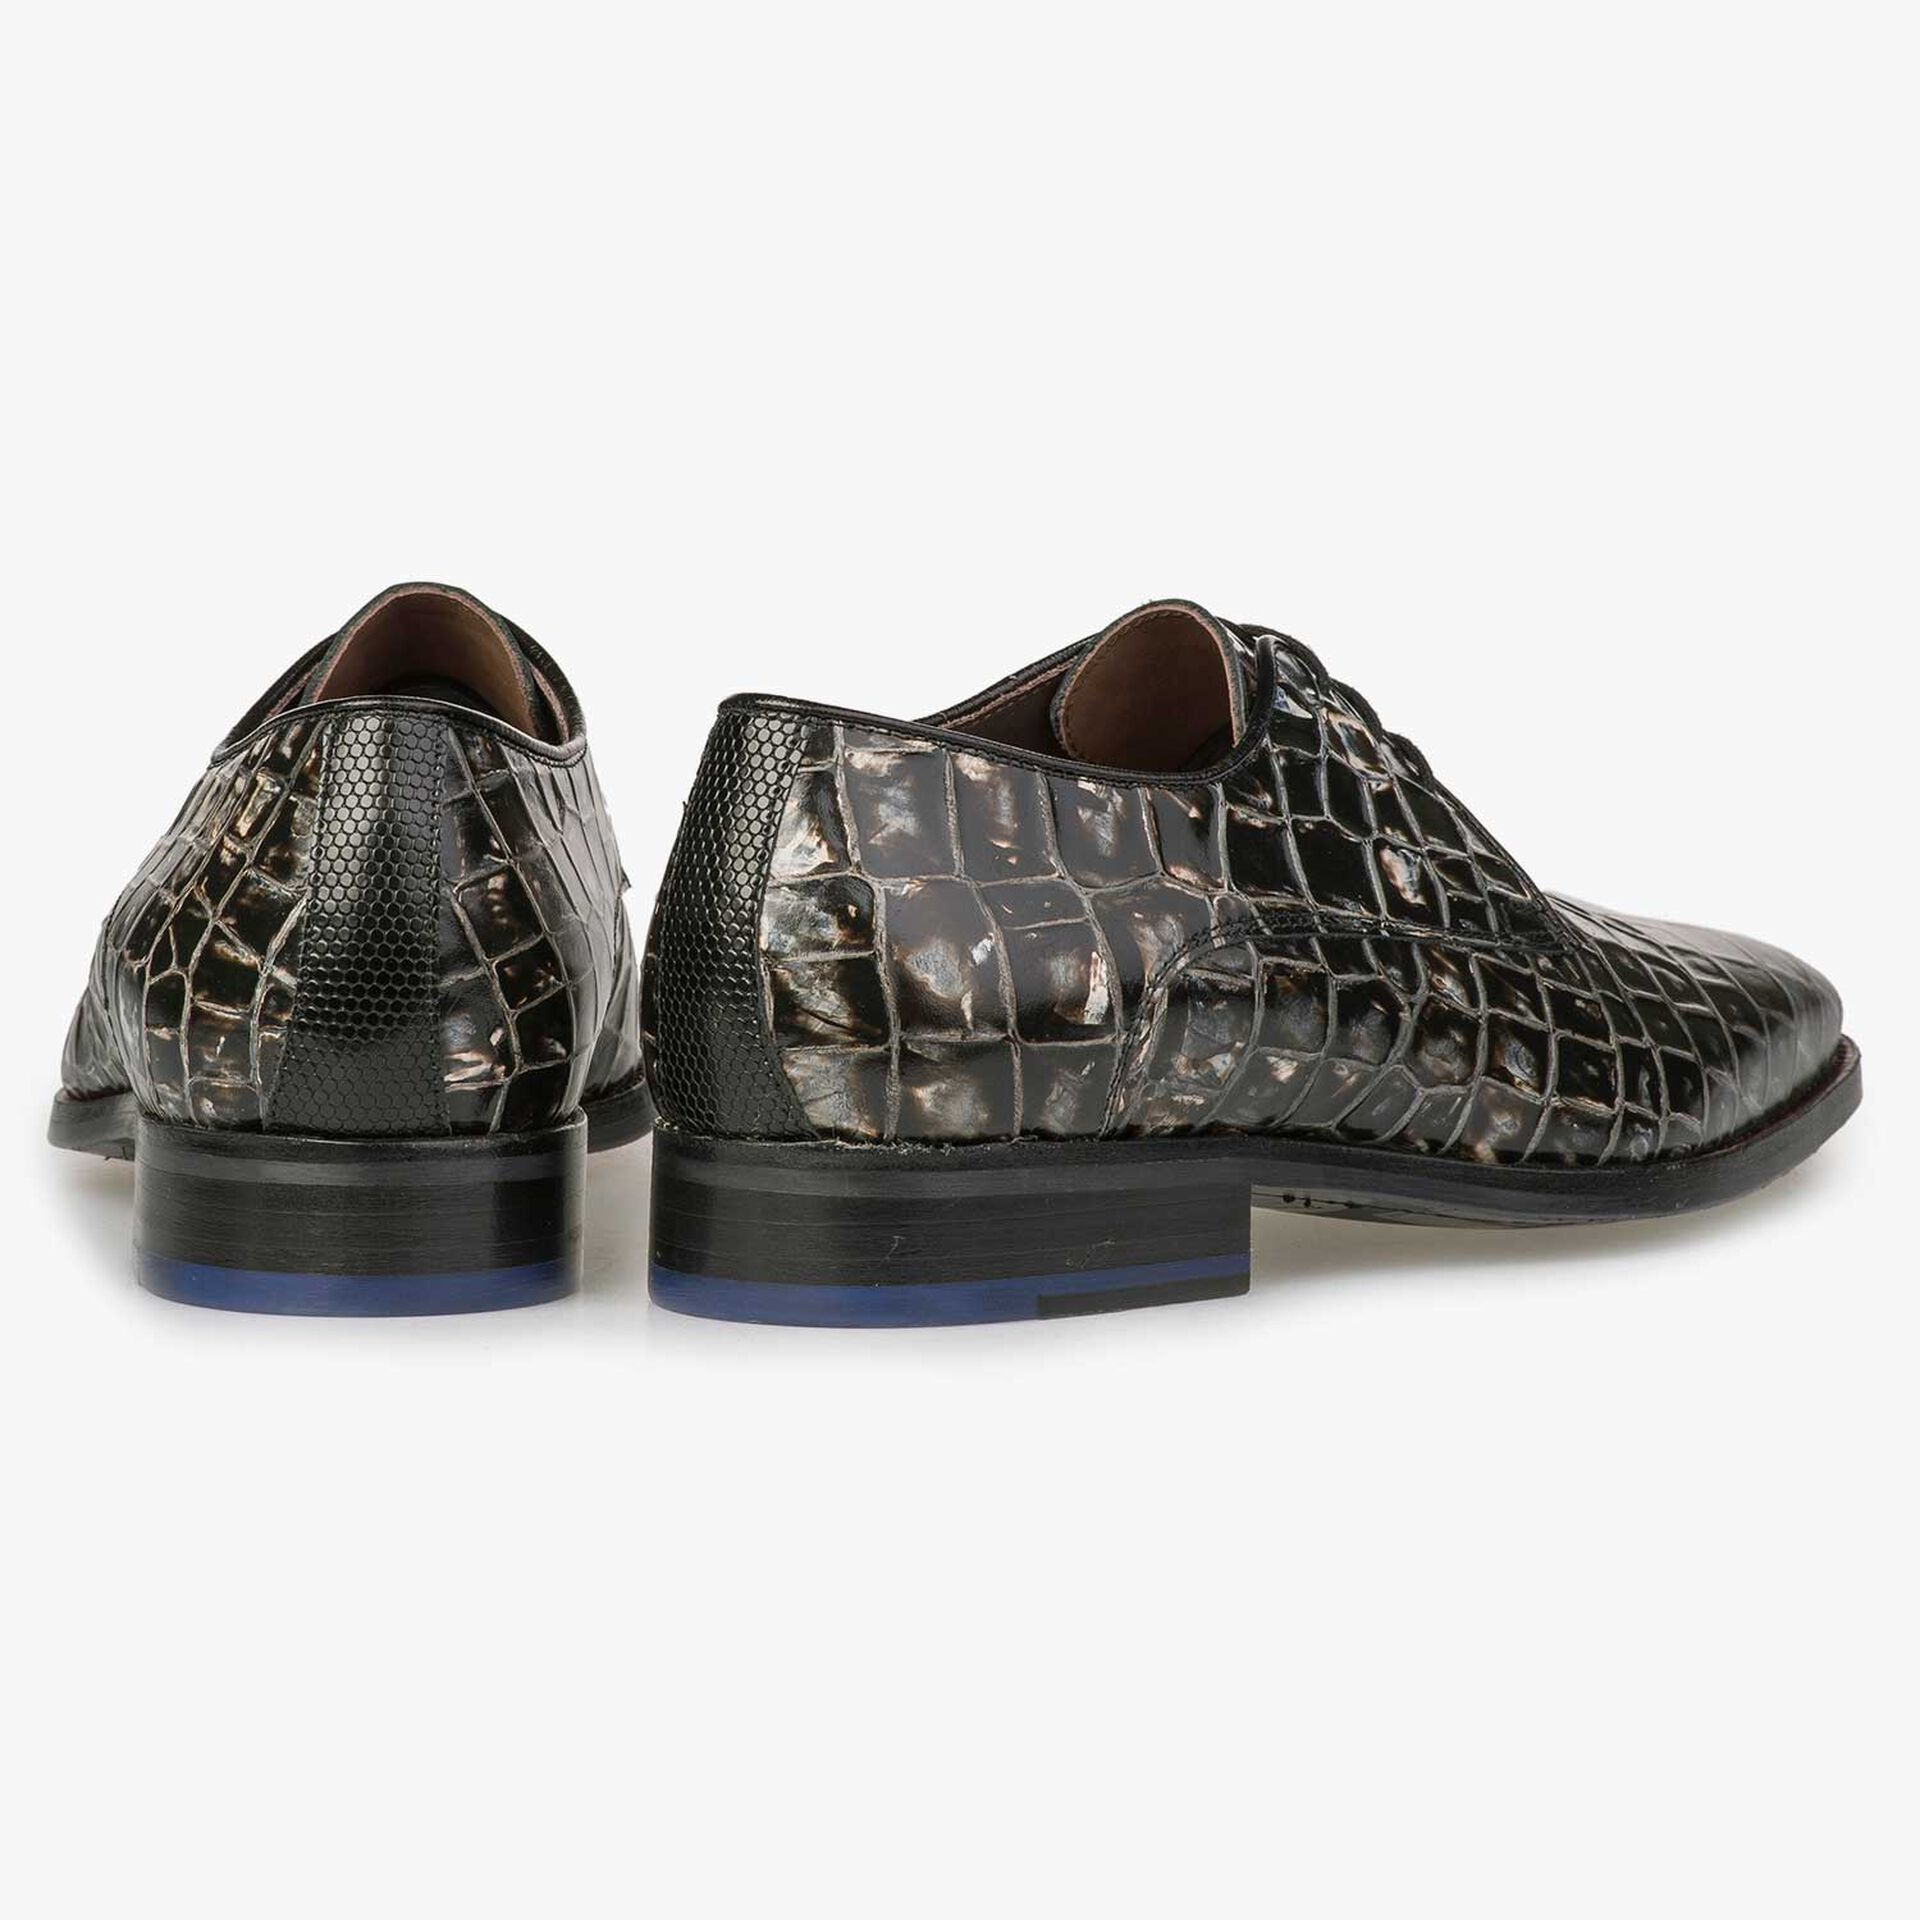 Grey-black leather lace shoe with croco print